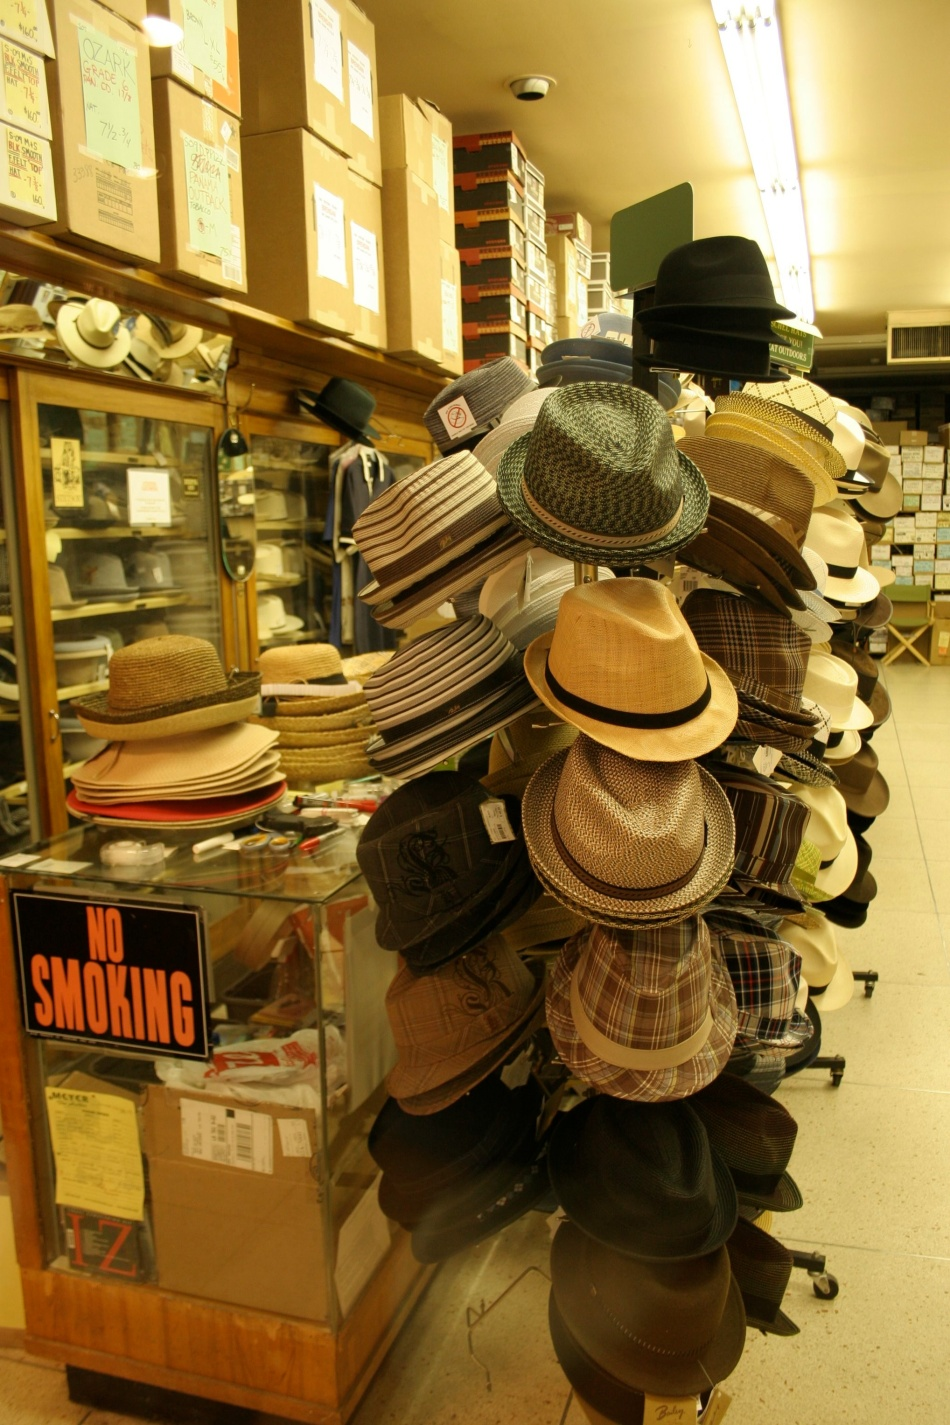 Hats on display at Meyer the Hatter